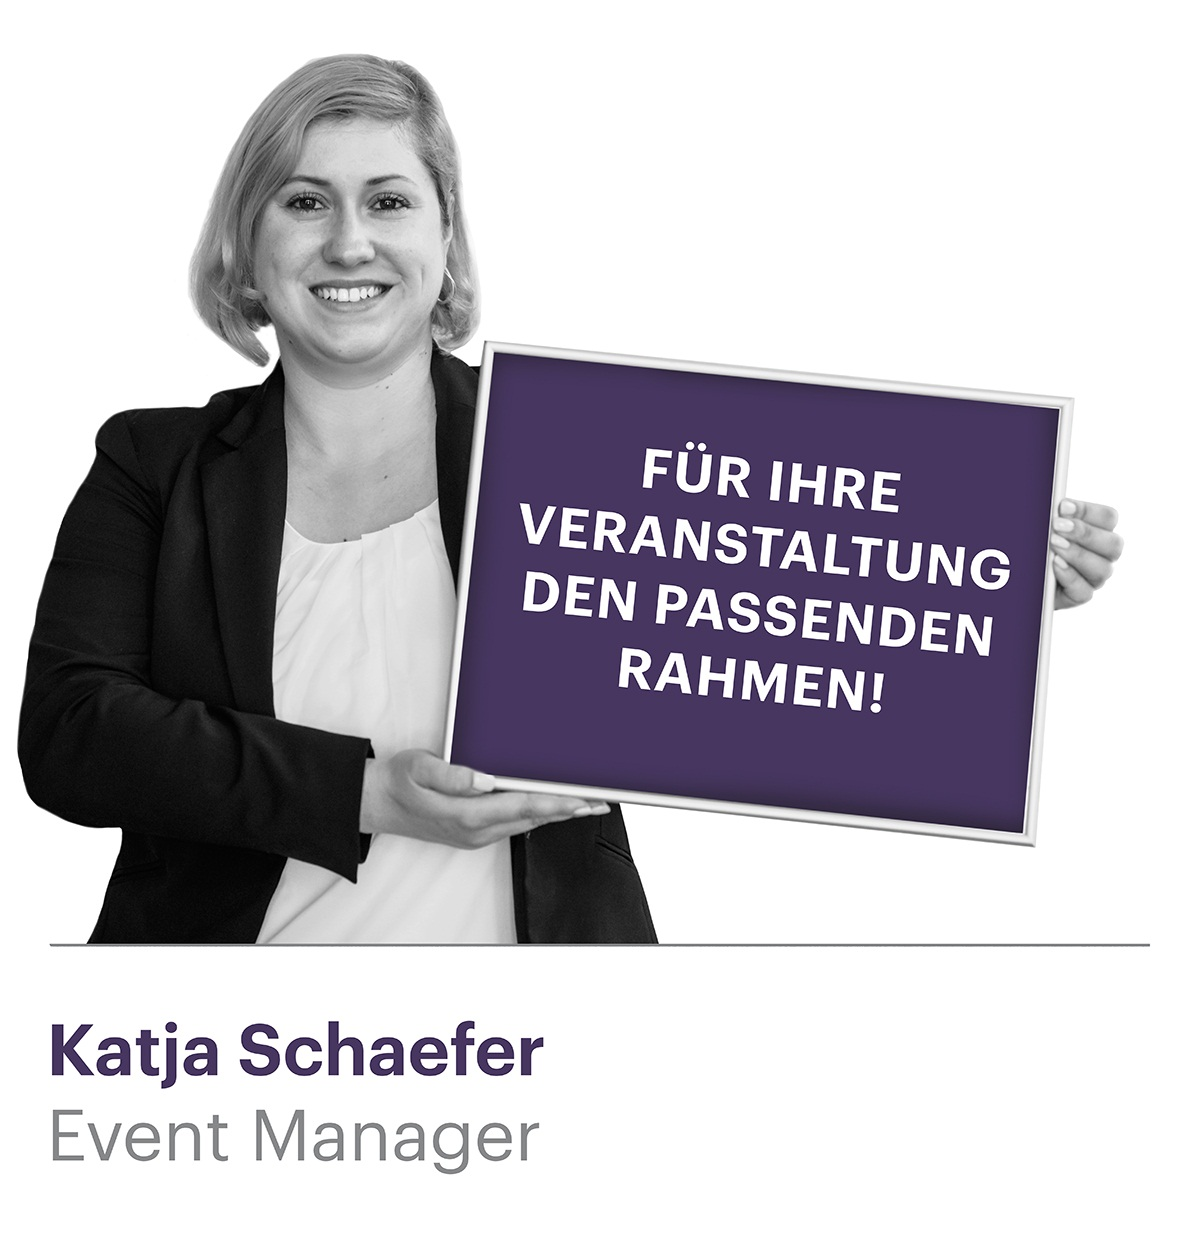 Event Managerin Katja Schäfer